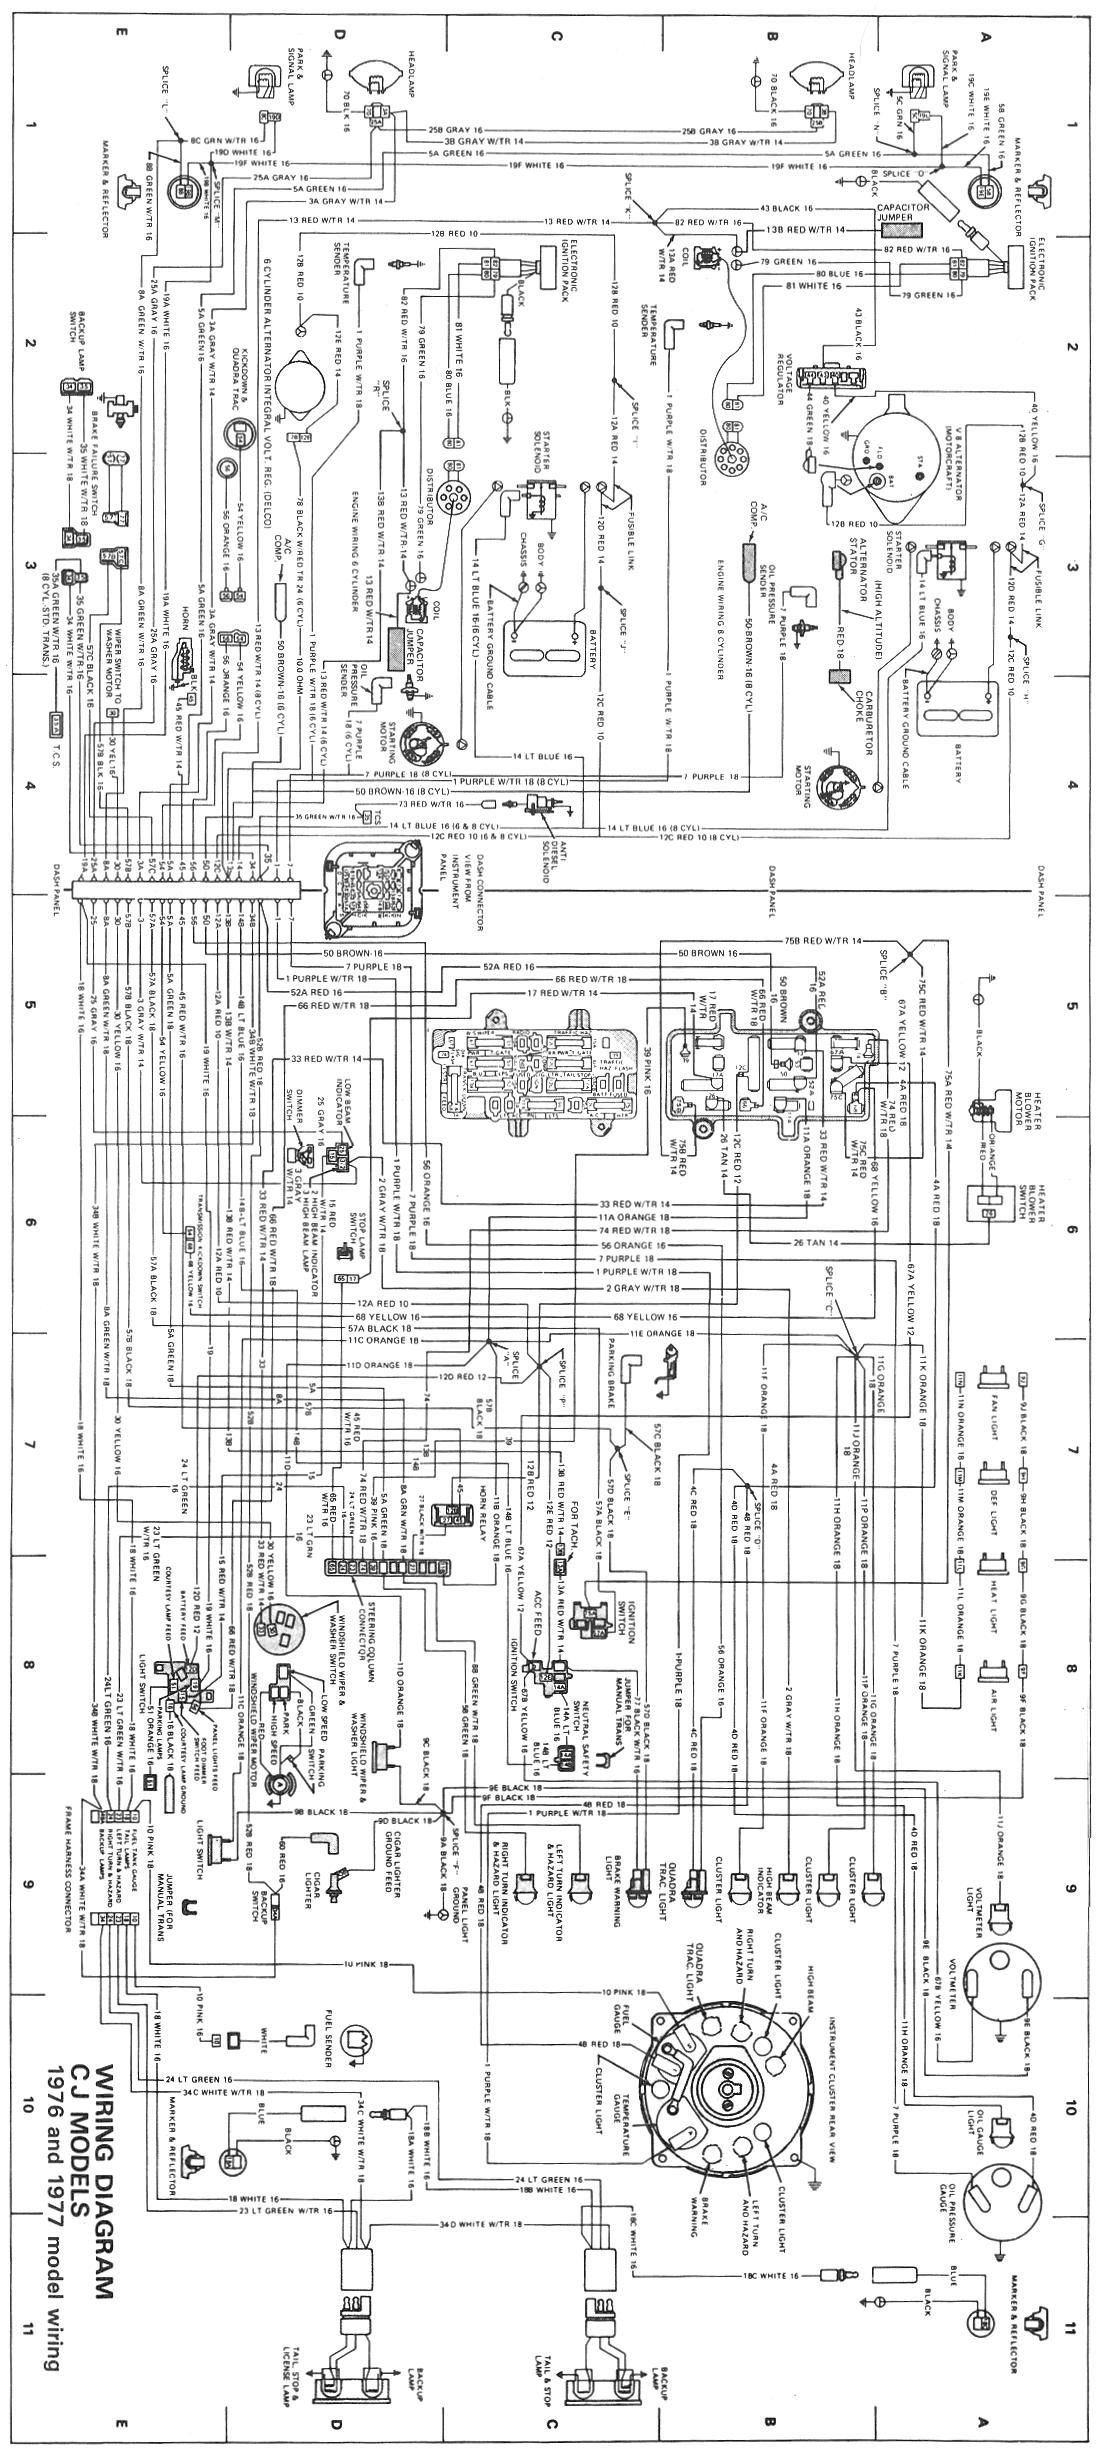 8d25ded6e3673519e155875e09844e5e cj wiring diagram 1976 1977 jpg 1,100�2,459 pixels 1976 jeep cj5 Painless Wiring Harness Diagram at honlapkeszites.co